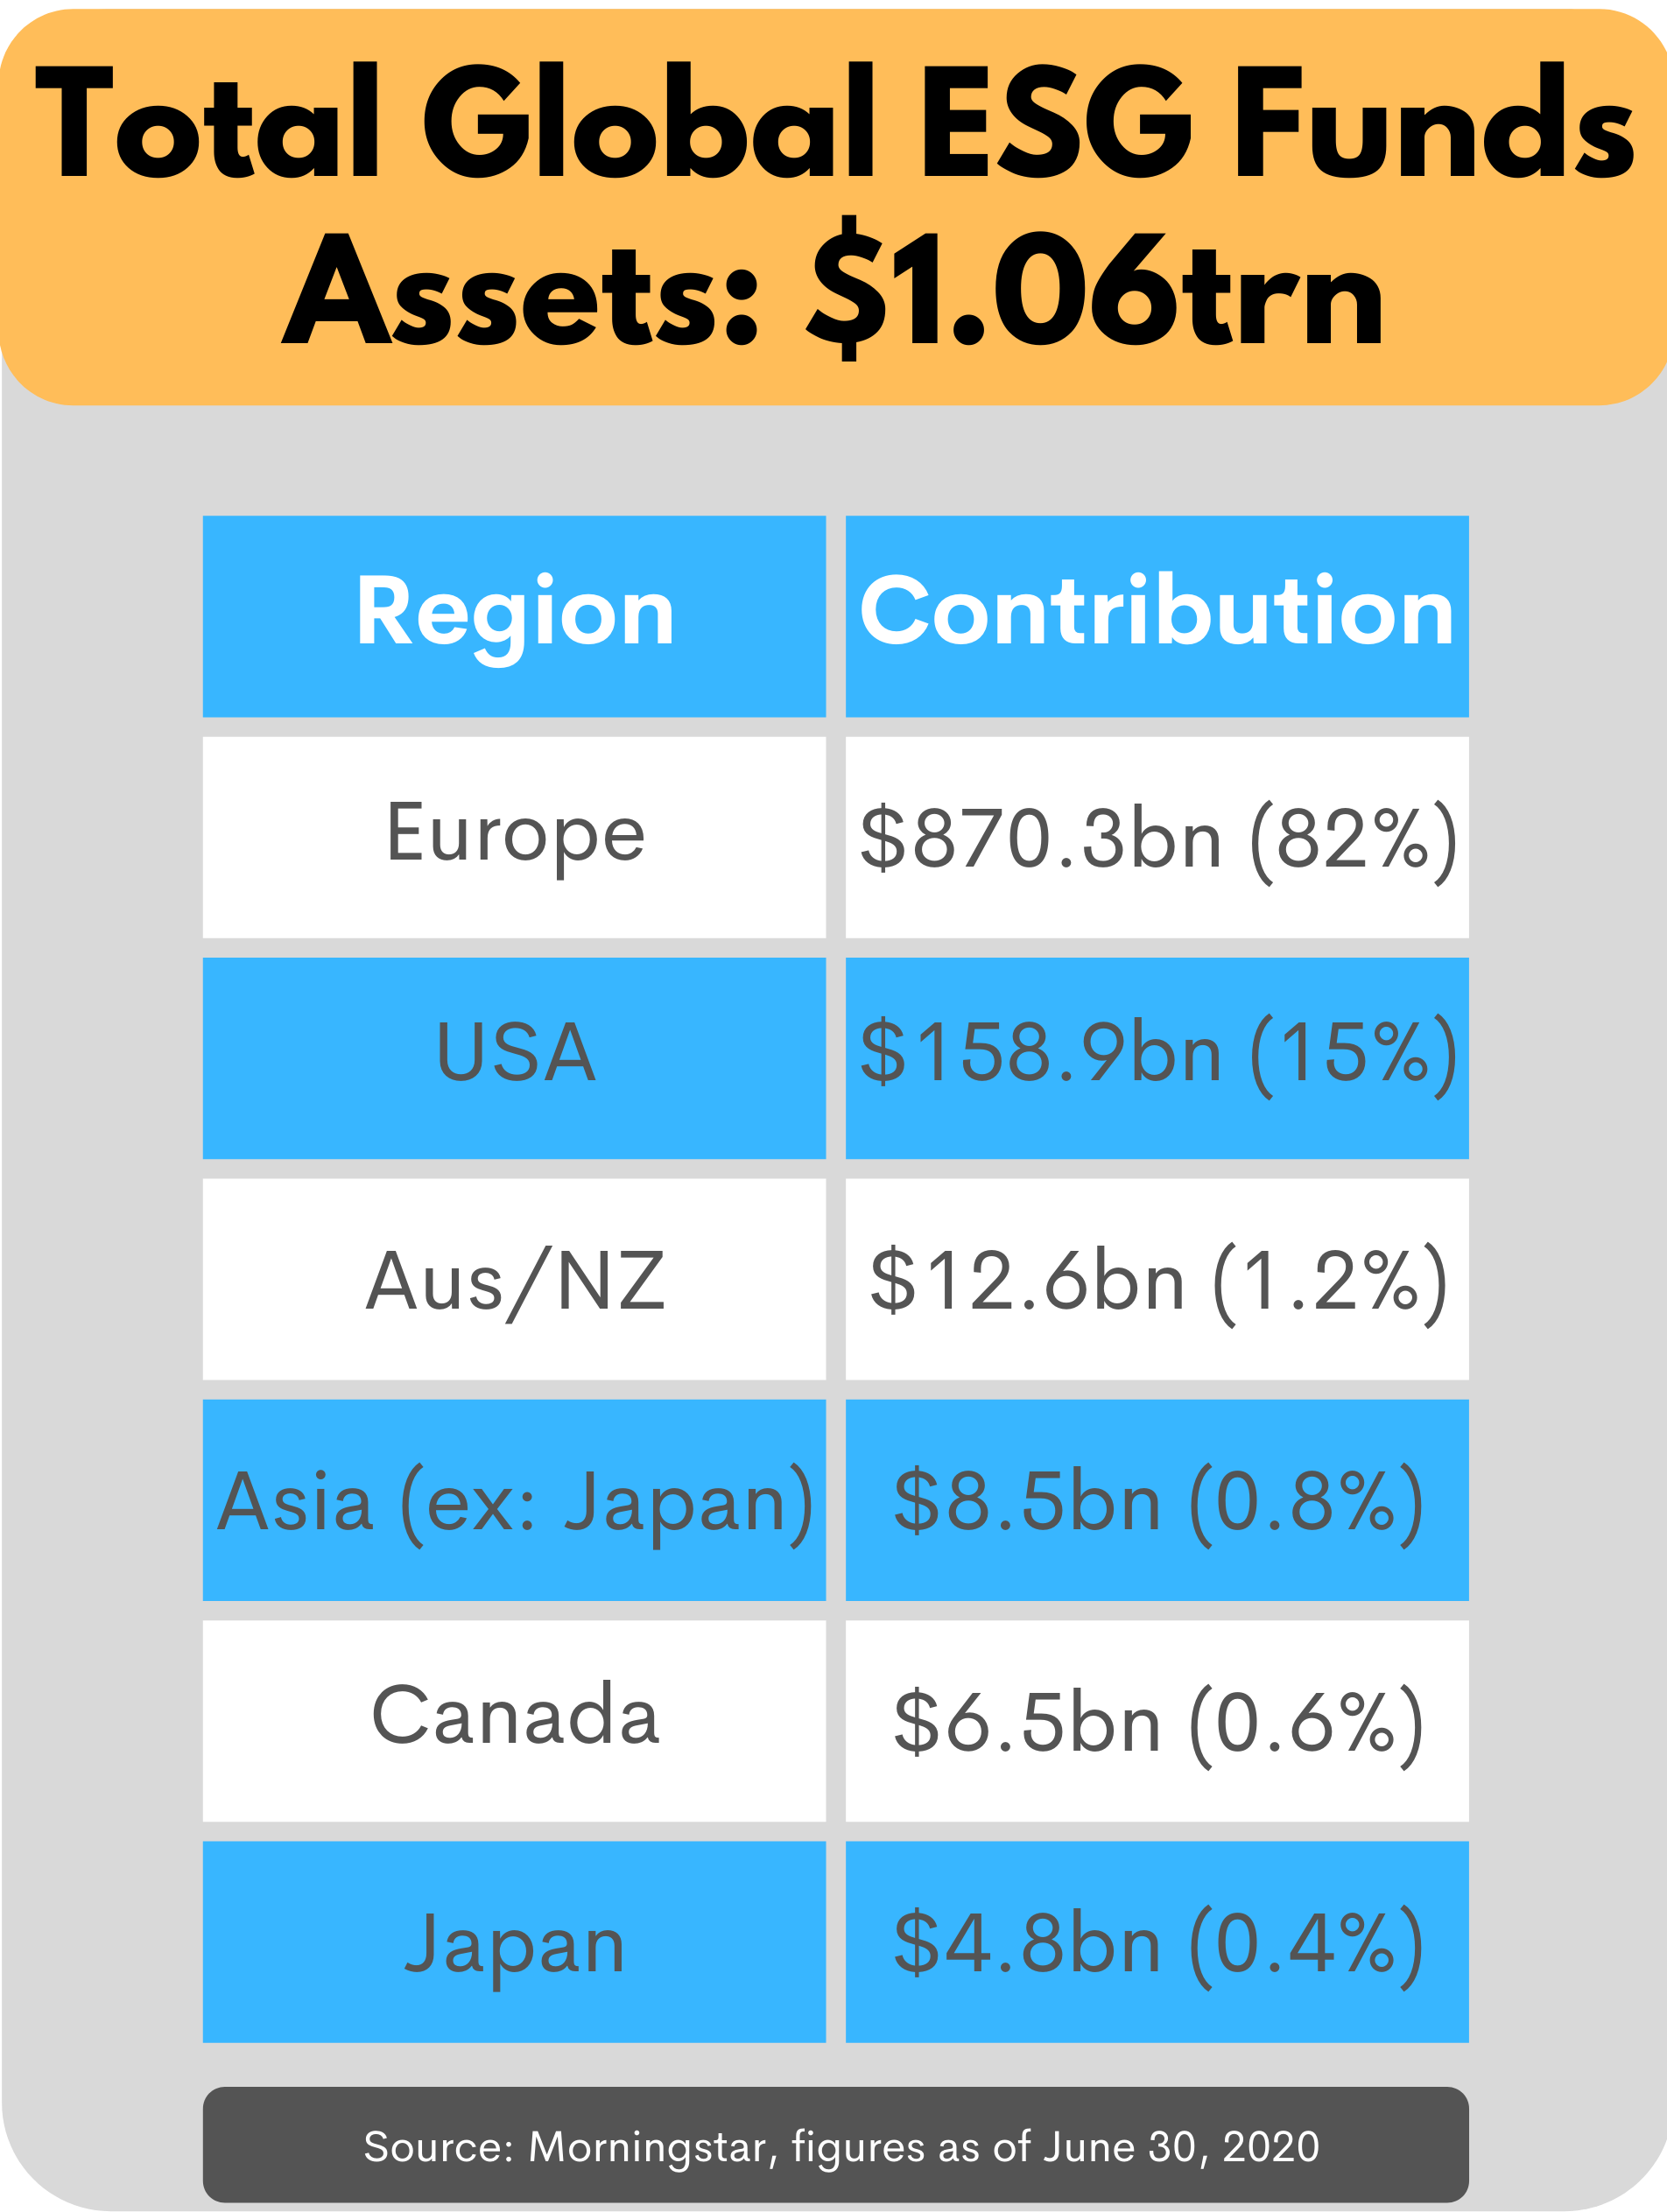 Table showing ESG Fund assets globally and per region